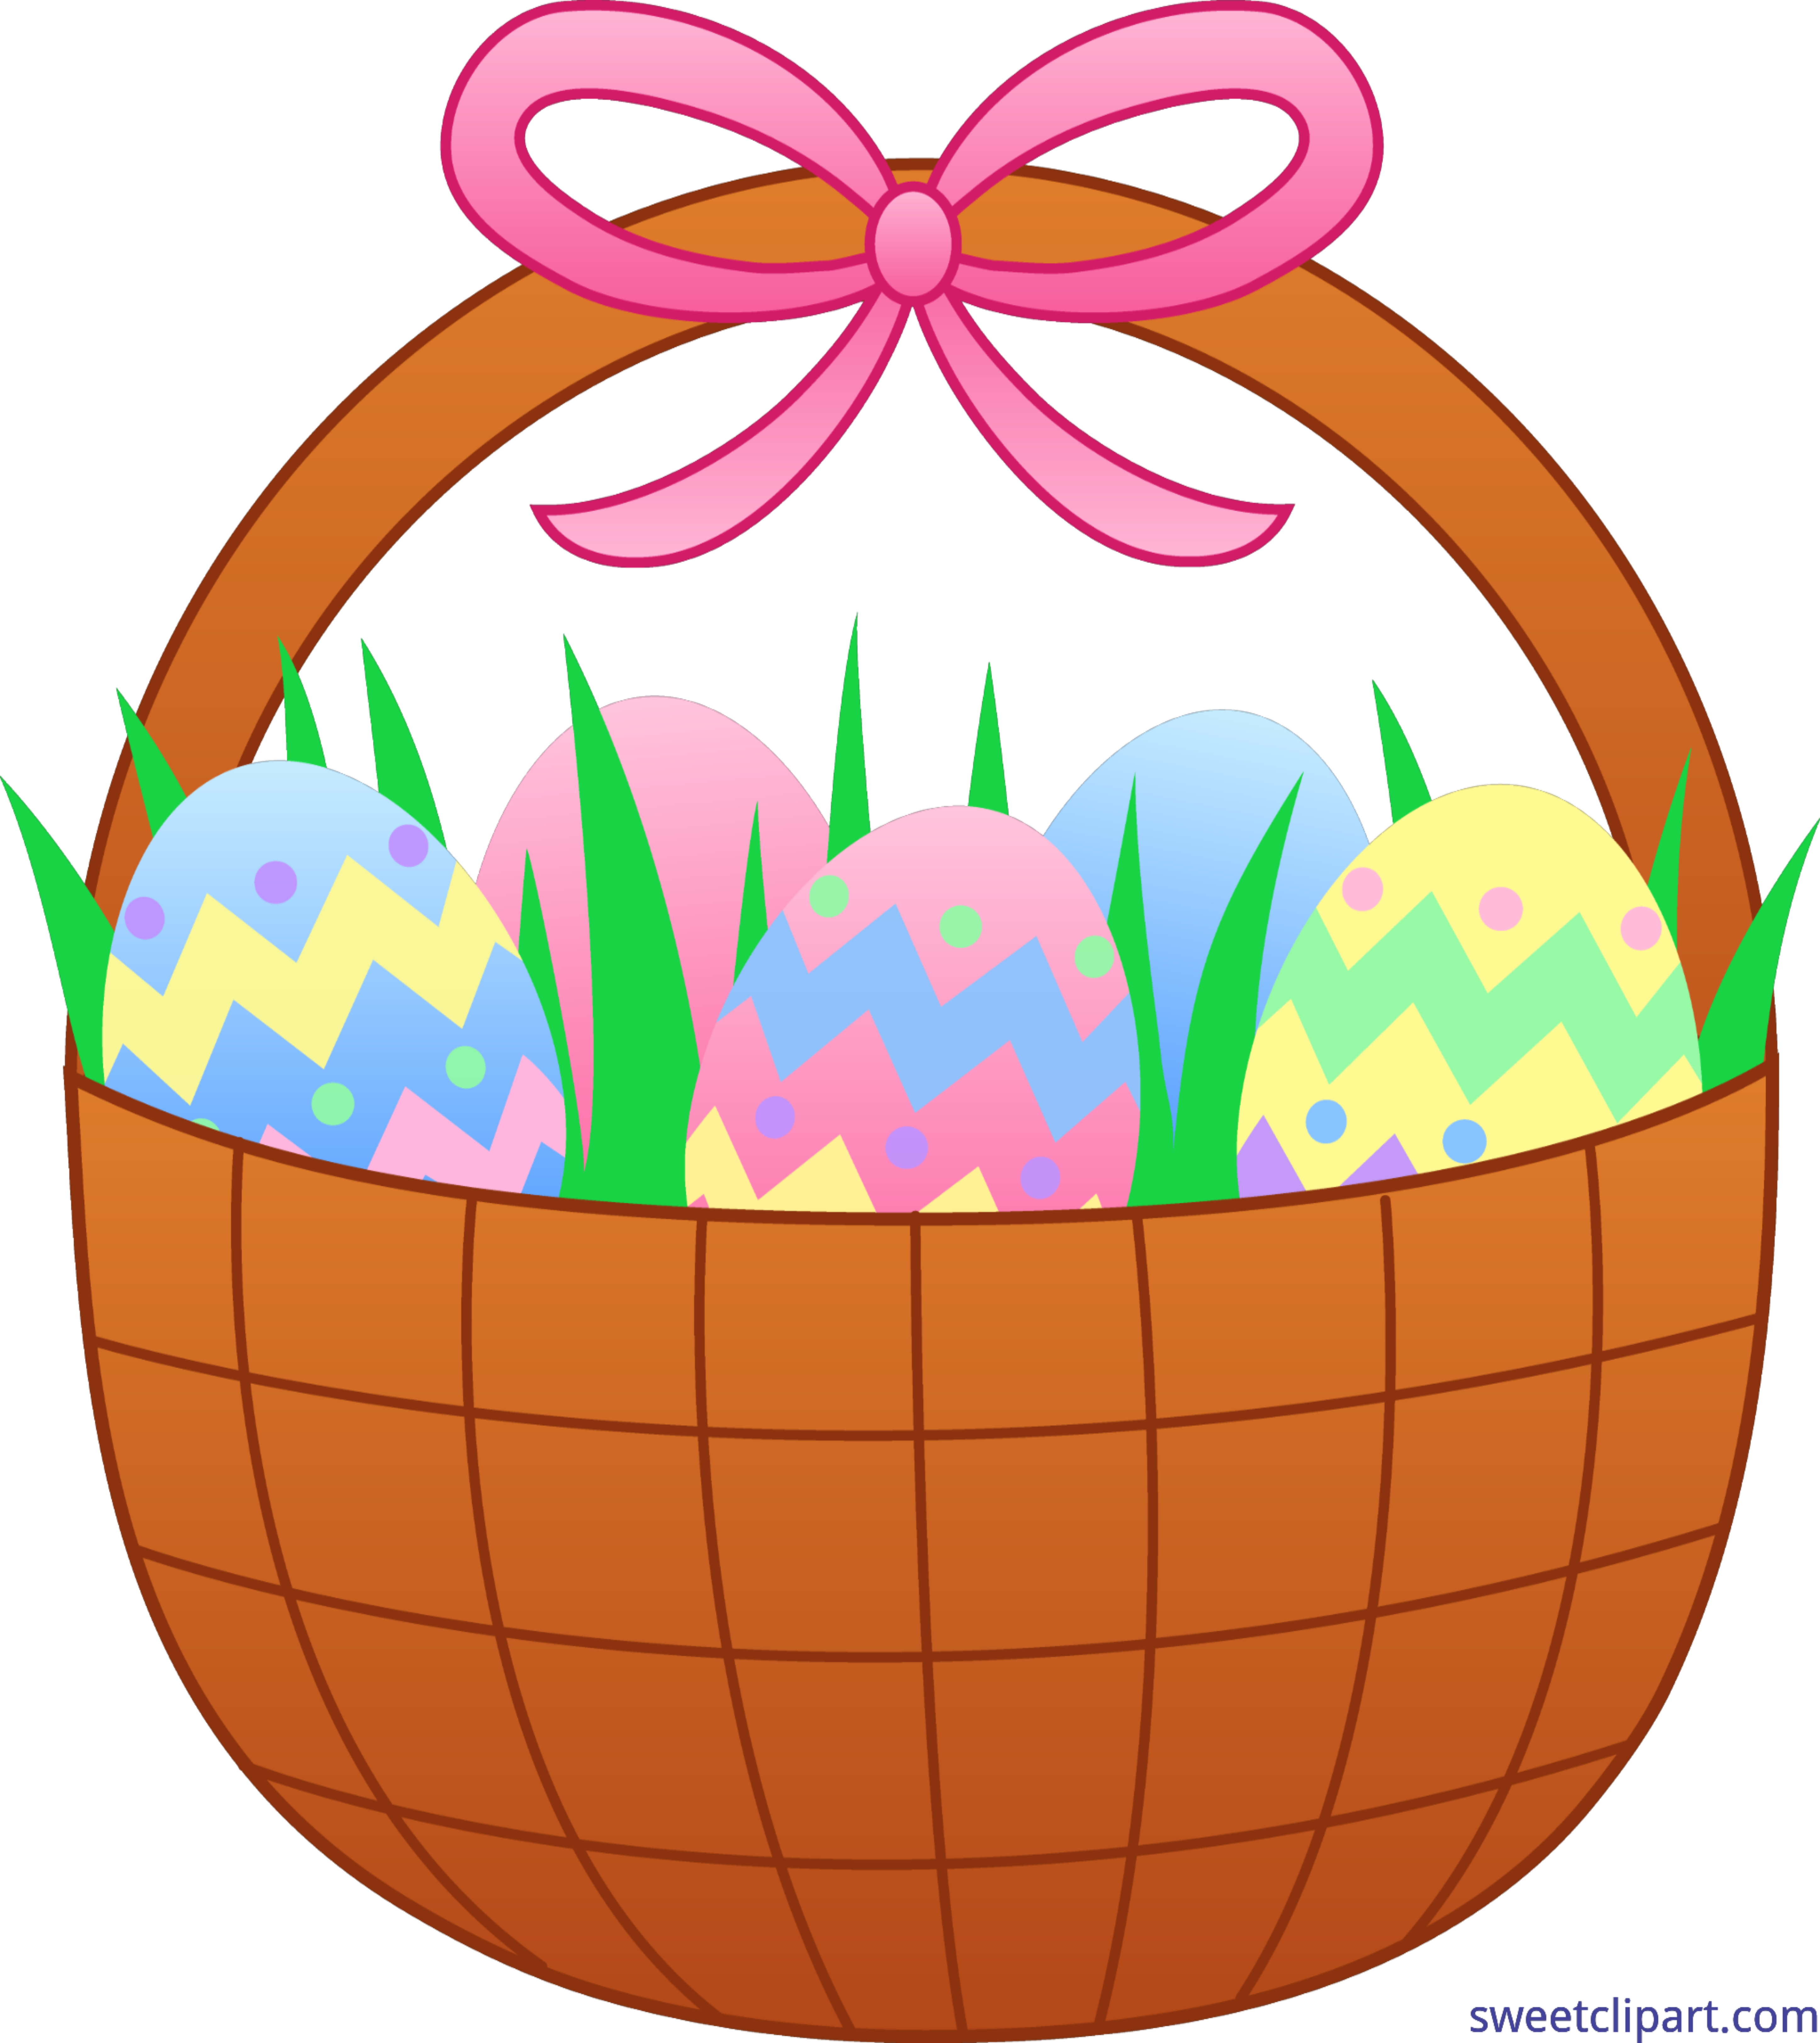 Gavel clipart pink. Cute easter basket with